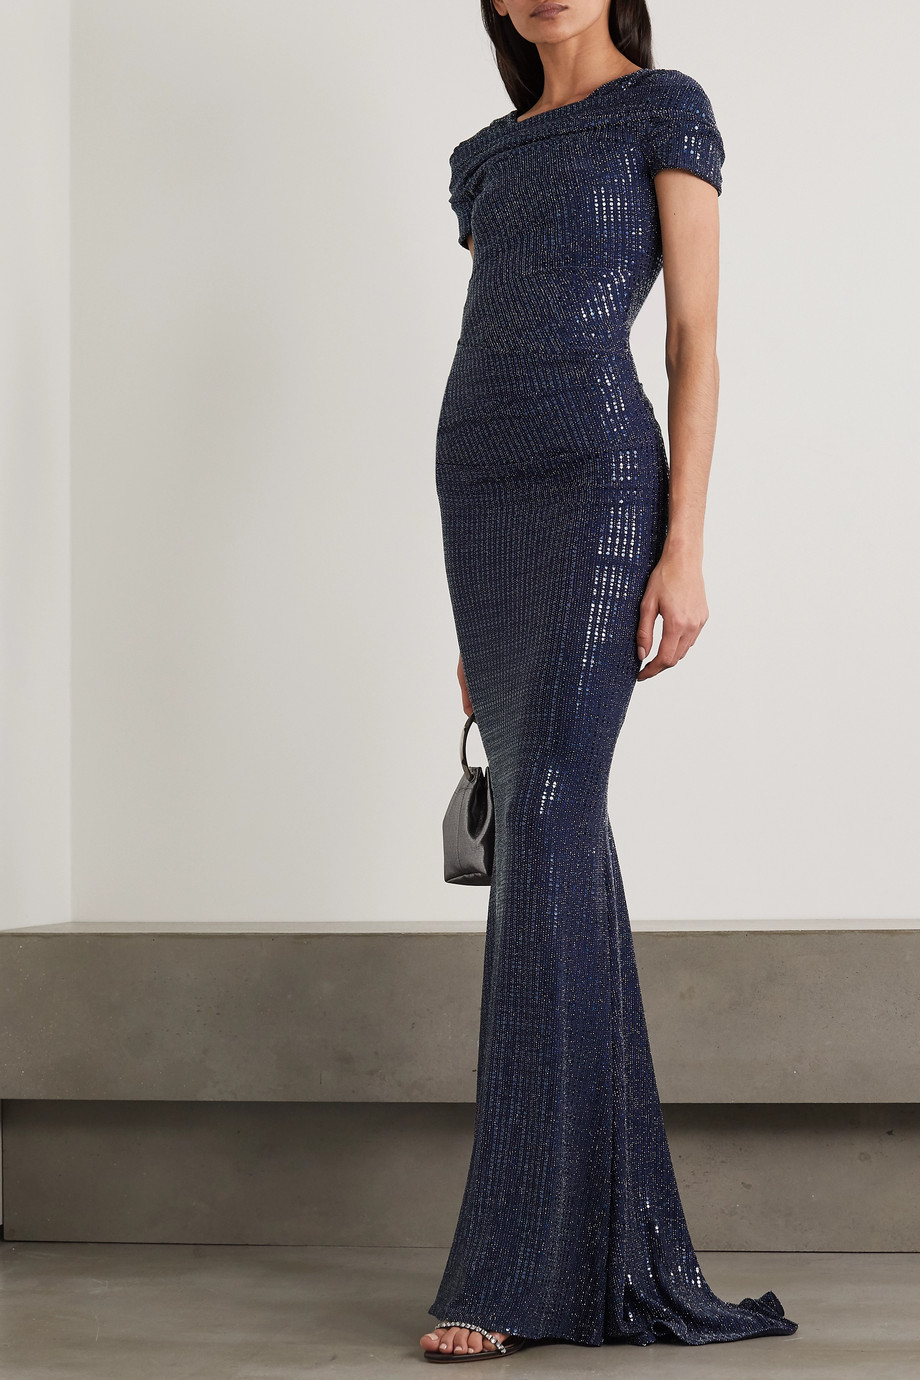 Talbot Runhof Gathered sequined metallic stretch-crepe gown